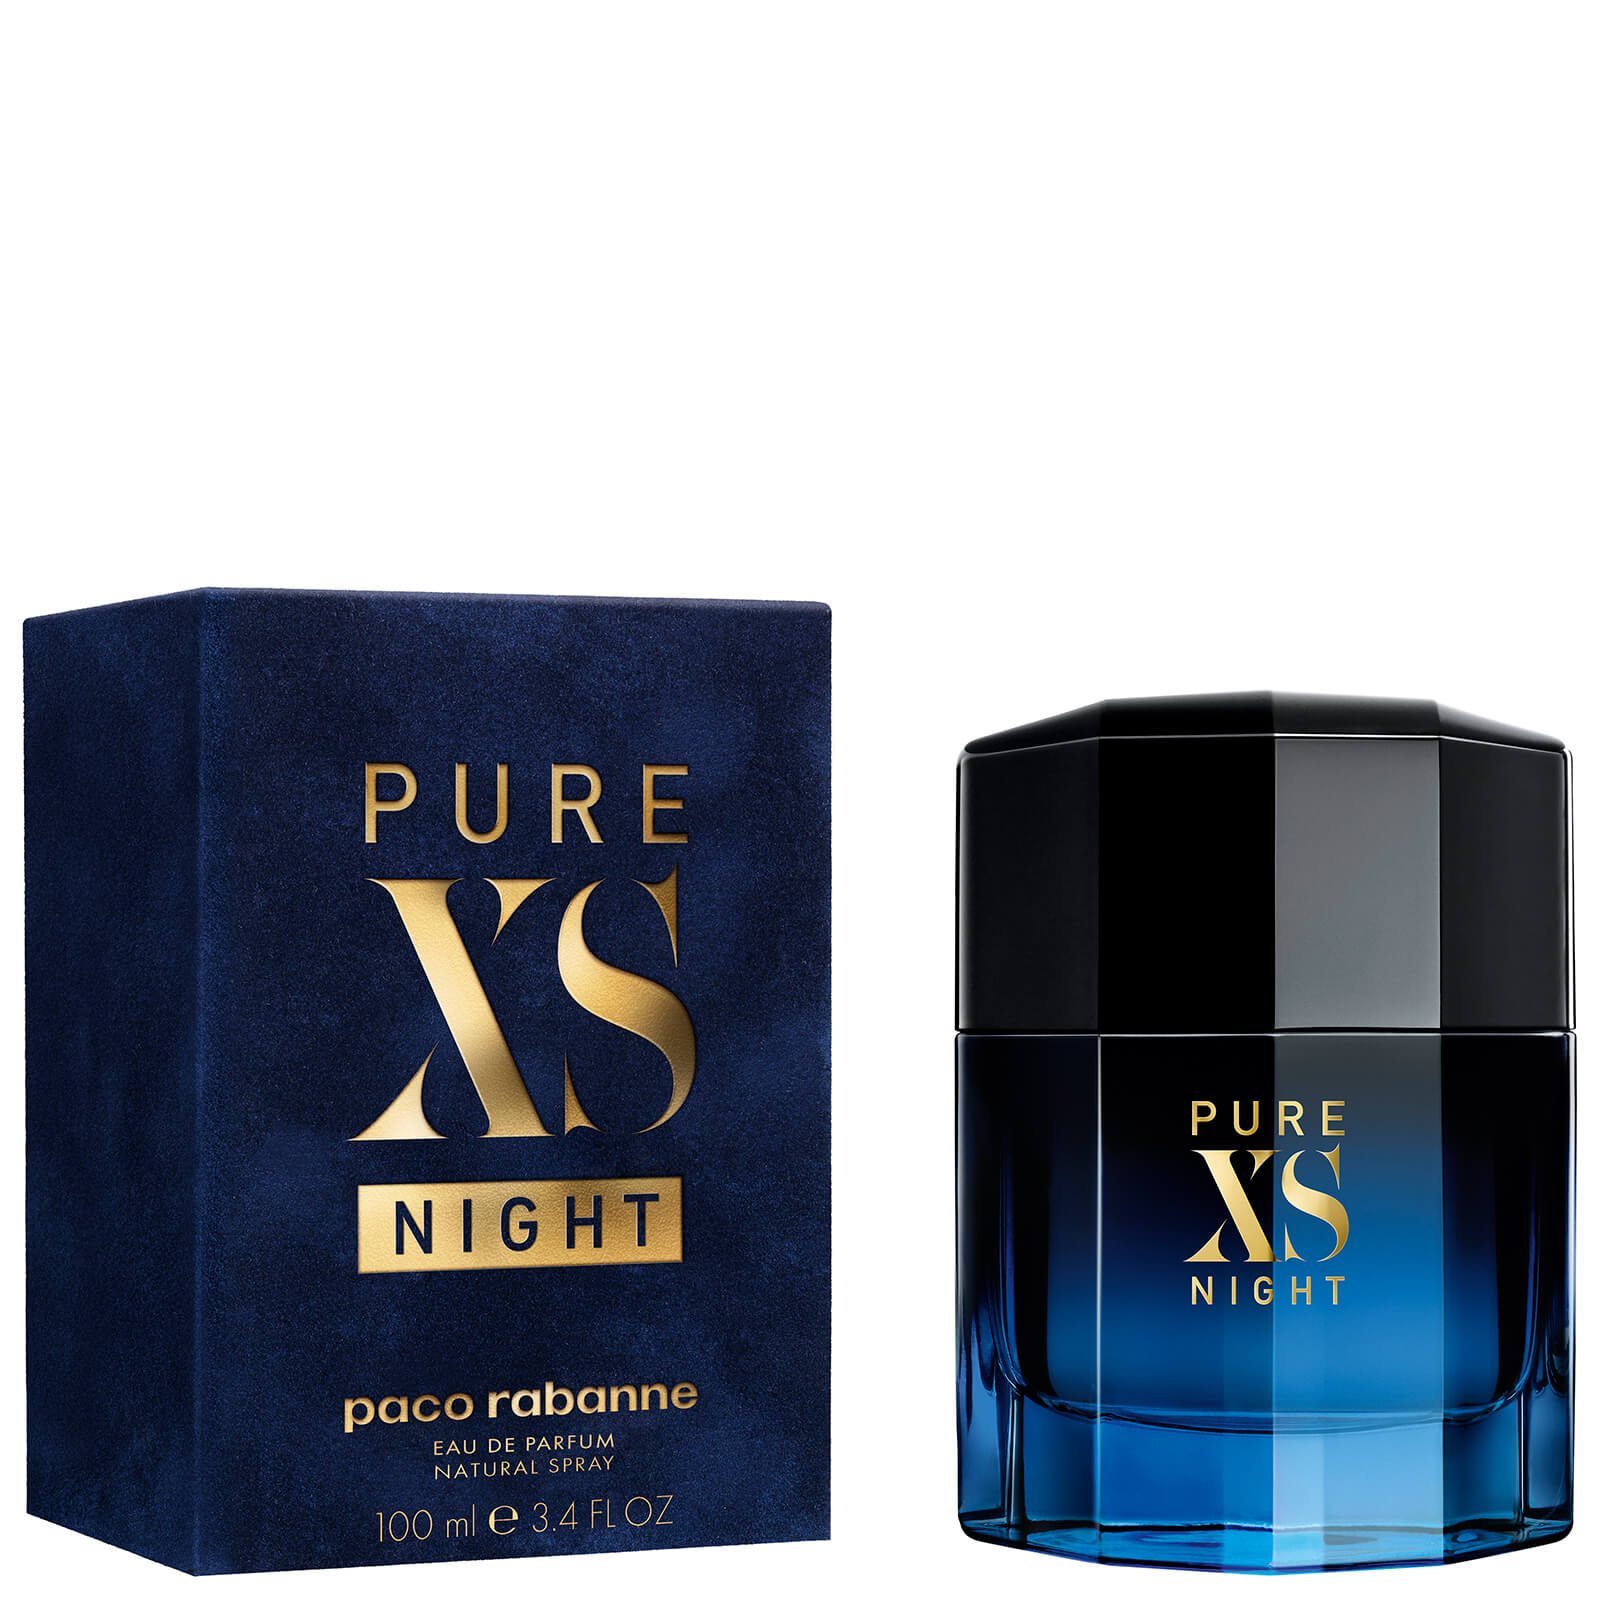 Paco Rabanne Pure Xs Night Eau De Parfum 100ml Free Shipping